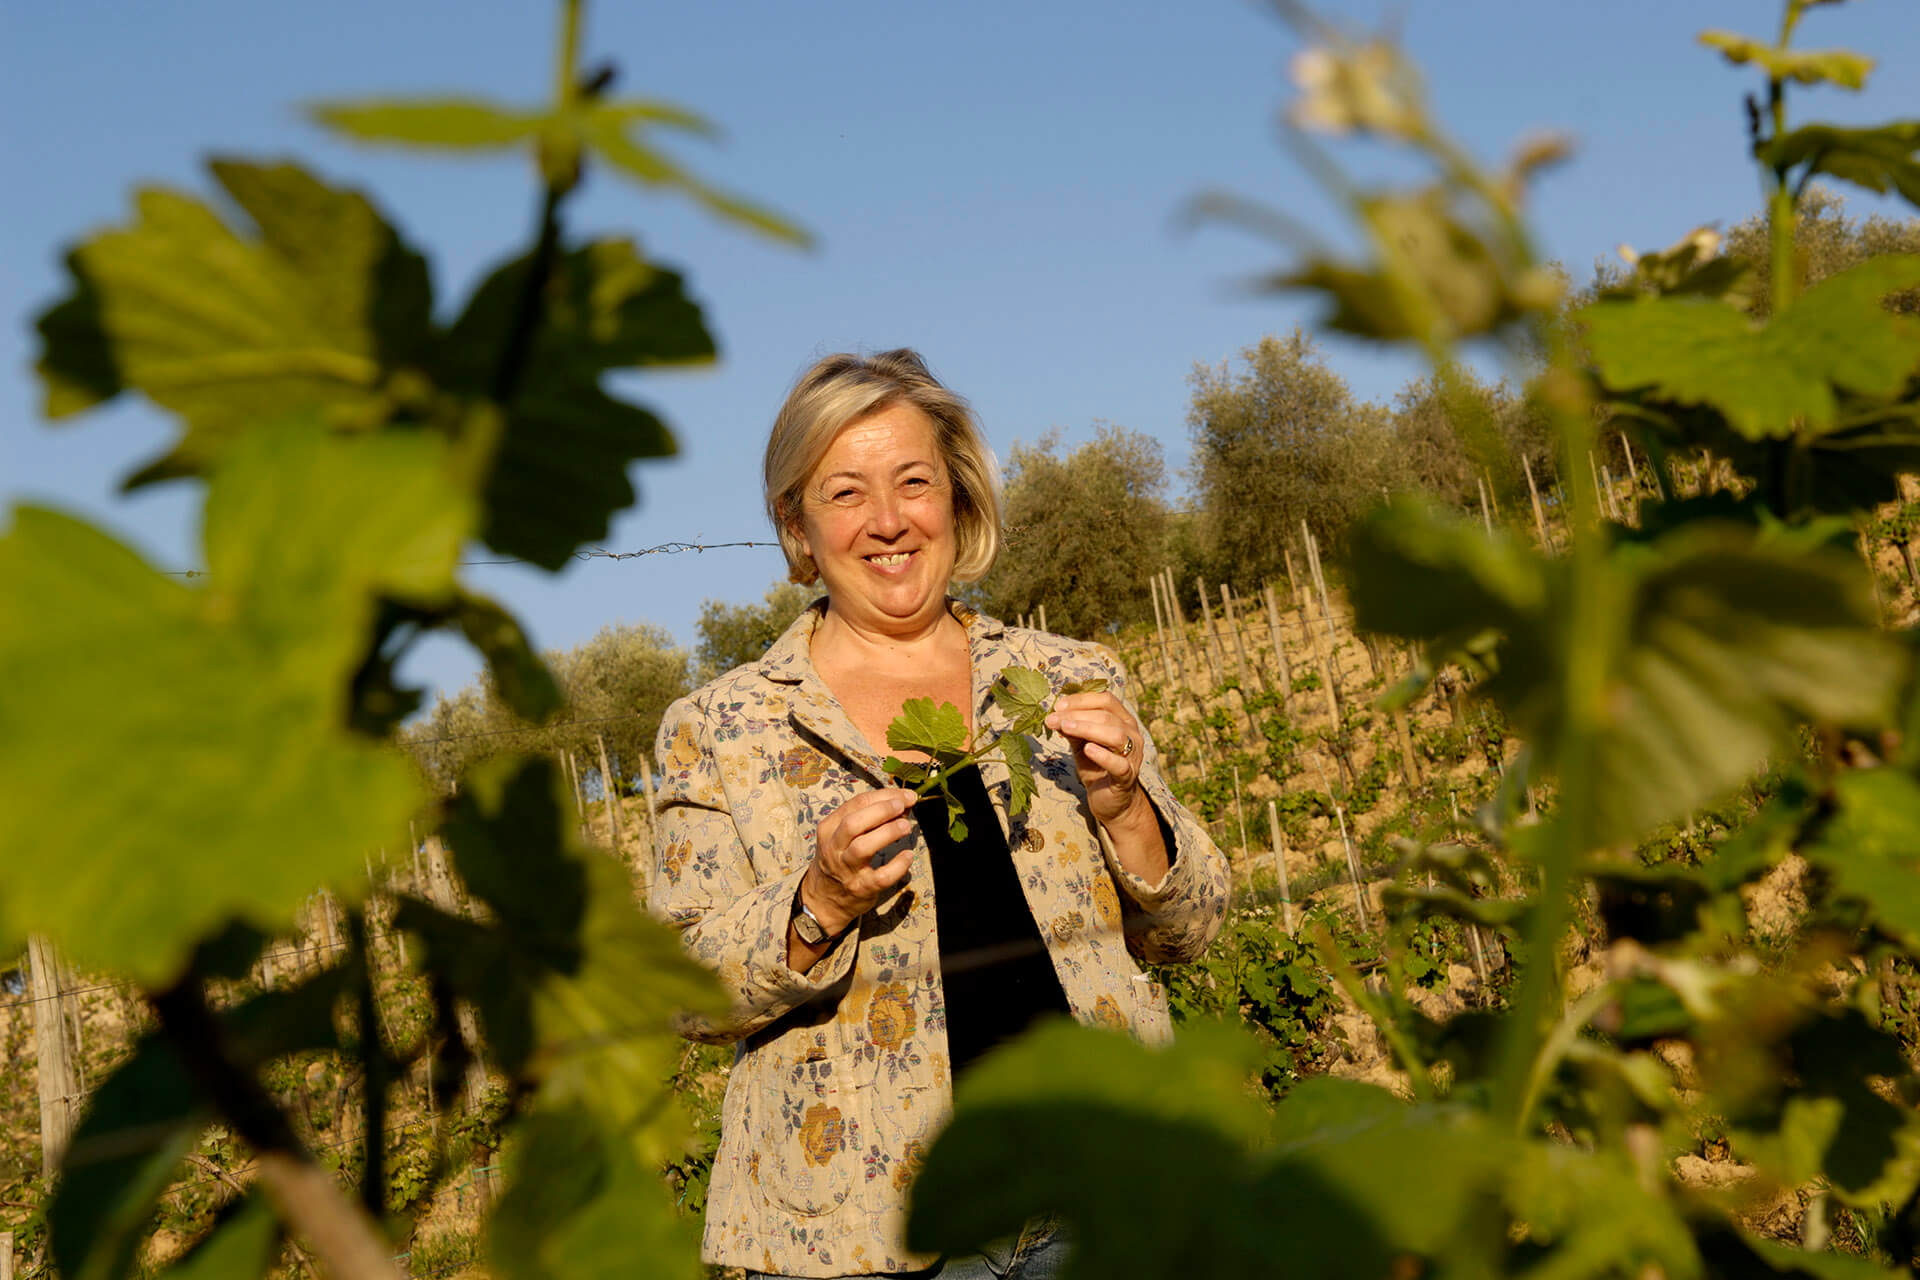 Wine Producer Donatella Cinelli Colombini